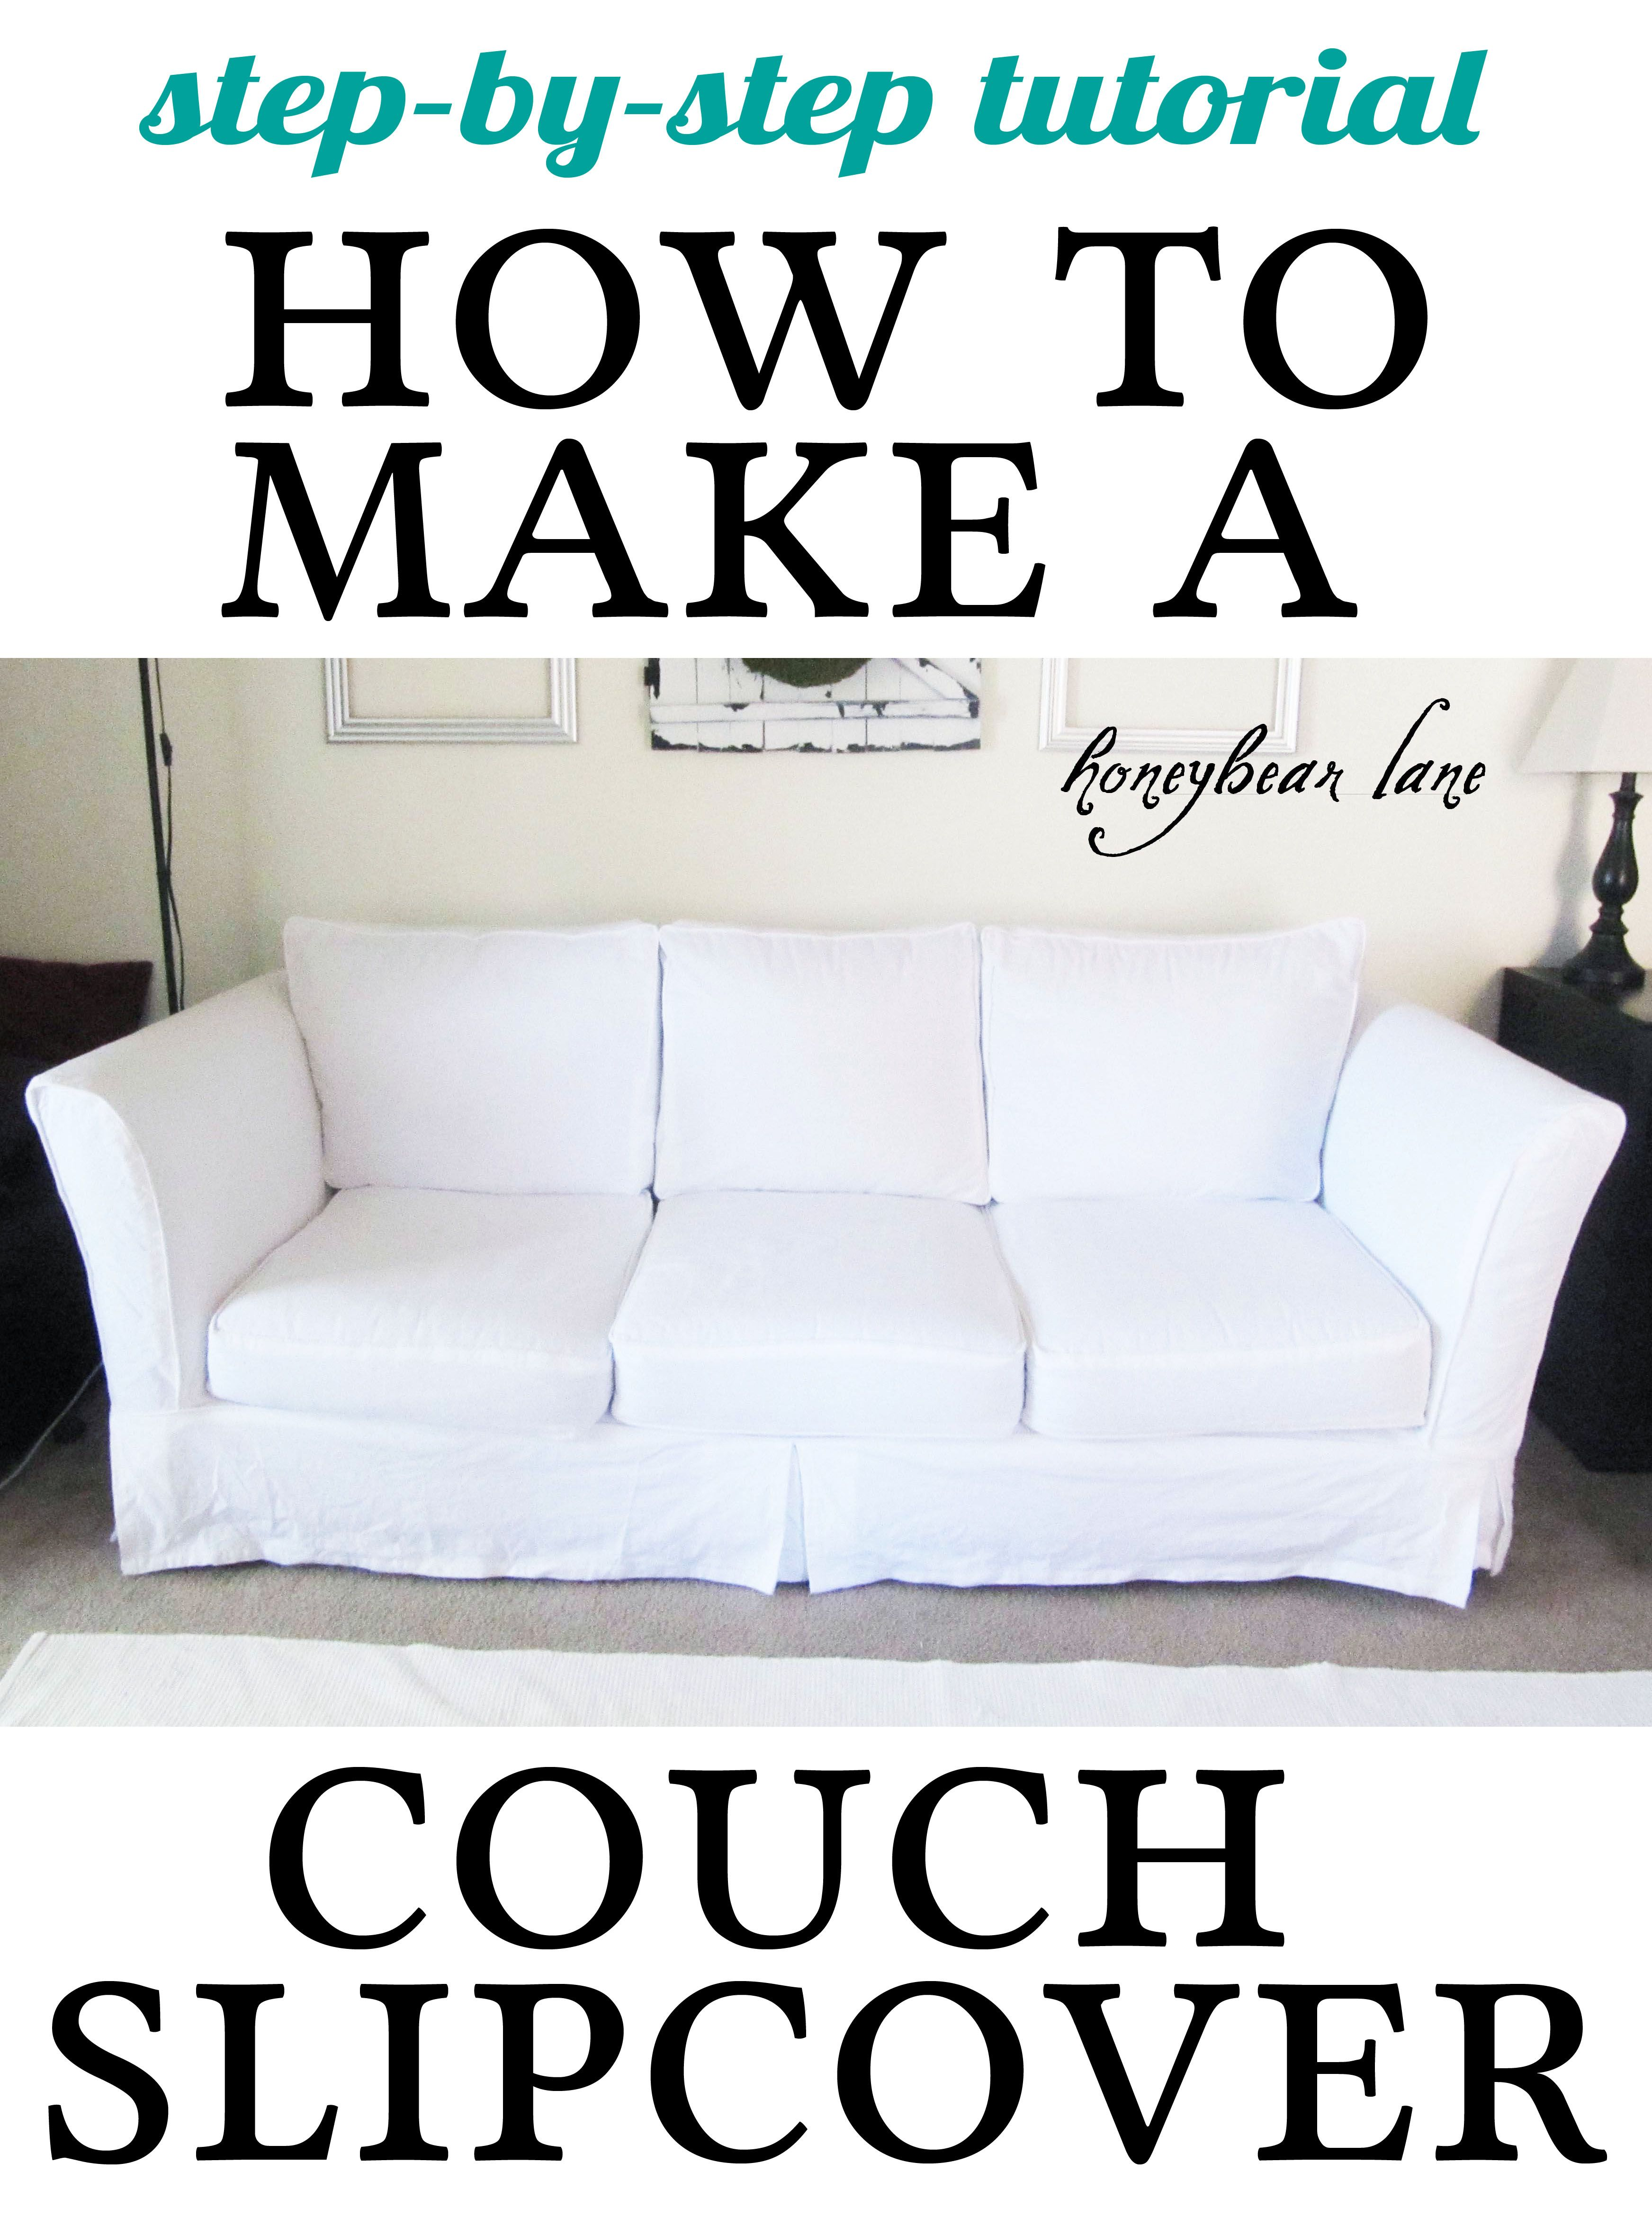 How to Make a Couch Slipcover (Part 11)  Projets de couture